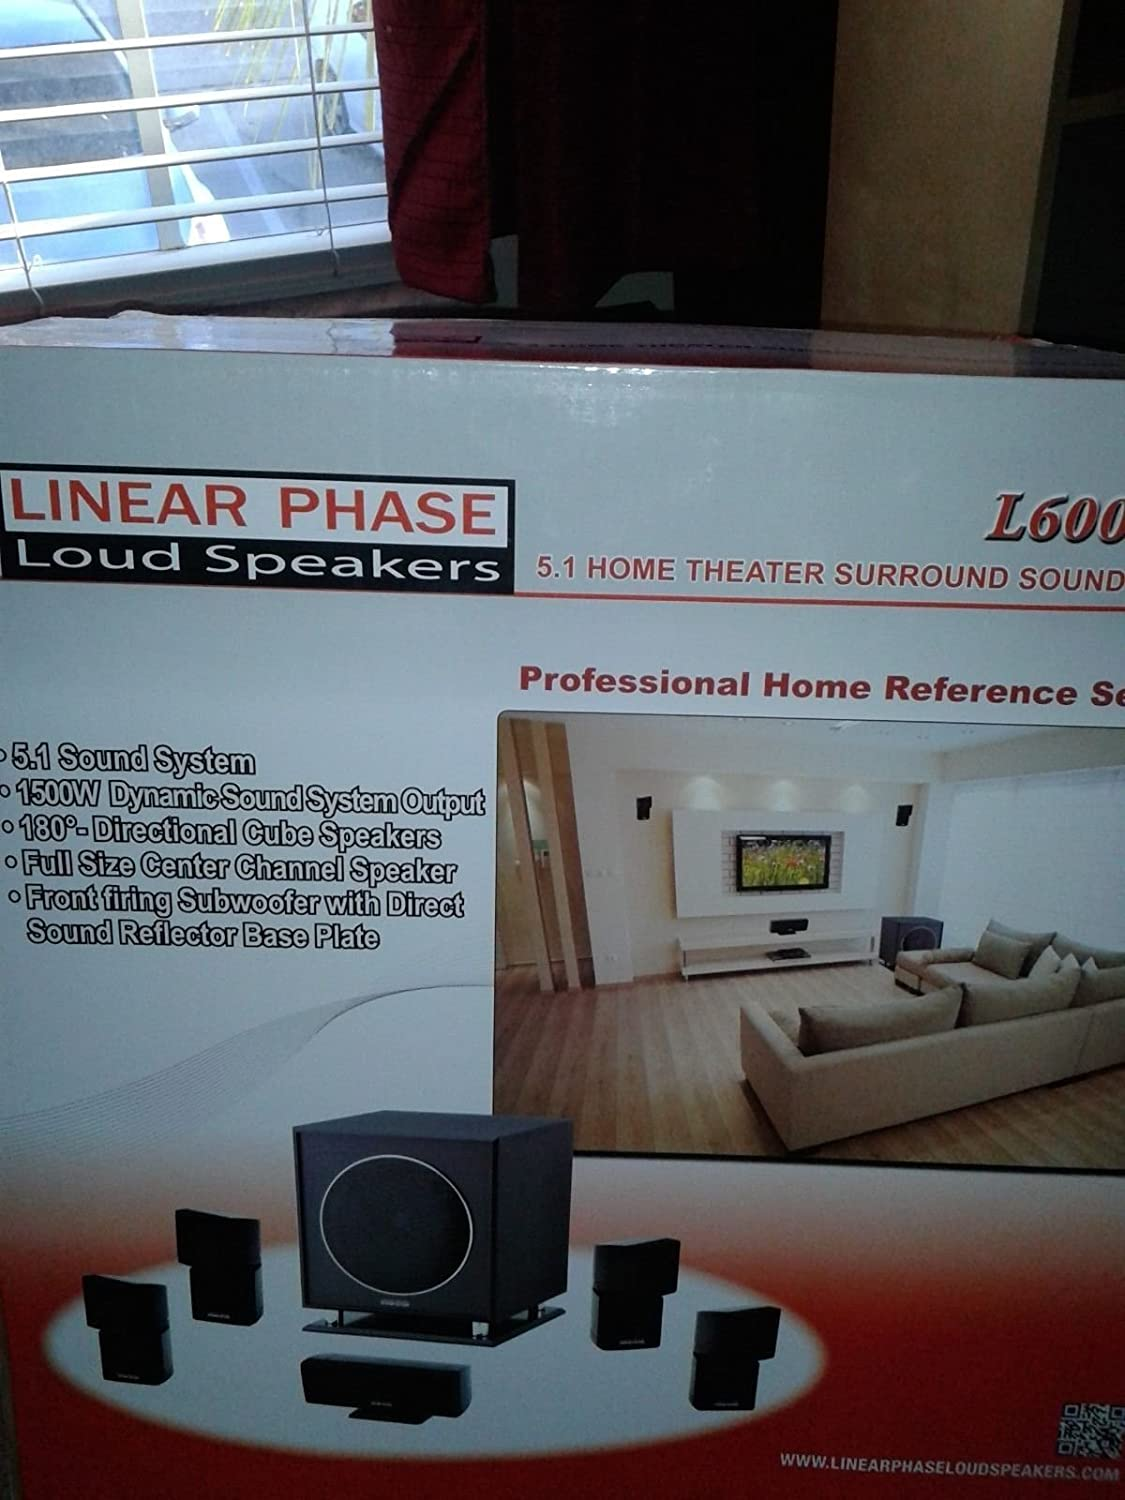 Amazon.com: Home Theater Surround Sound System L6000HD Linear Phase ...